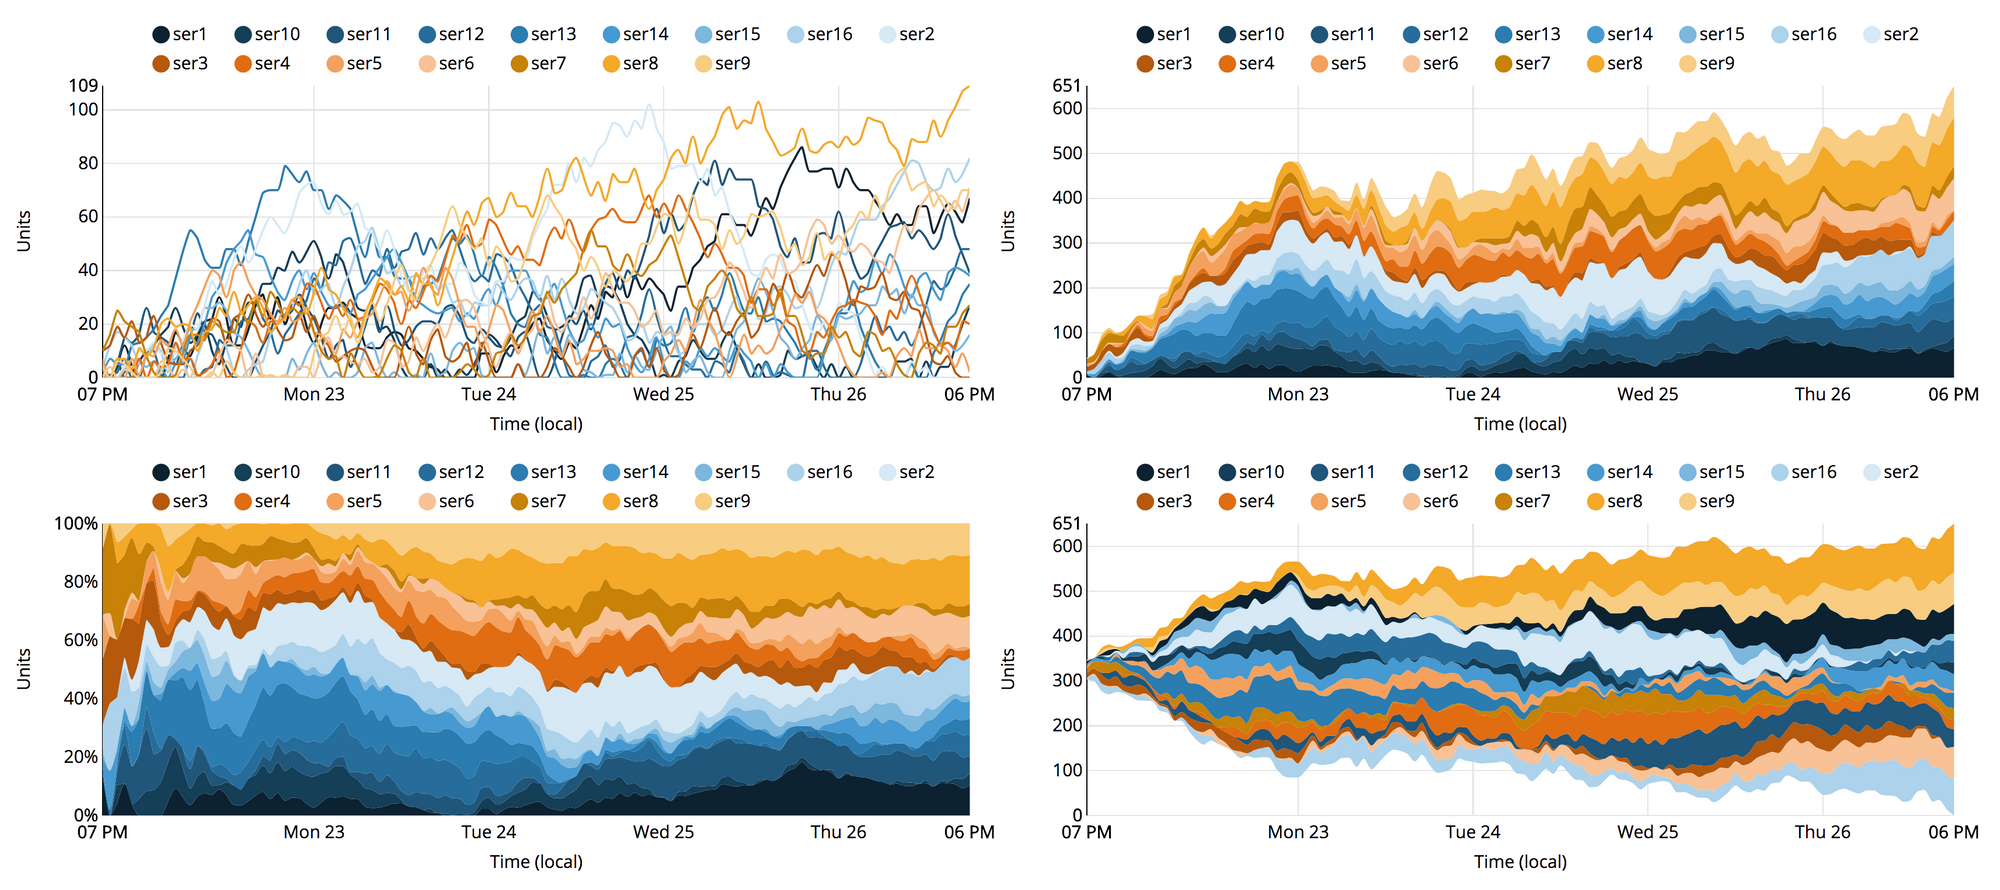 Analytics charts with a blues and oranges. Telling the colors of the lines apart is a different visual experience than separating out the dots in sequential order as they appear in the legend.